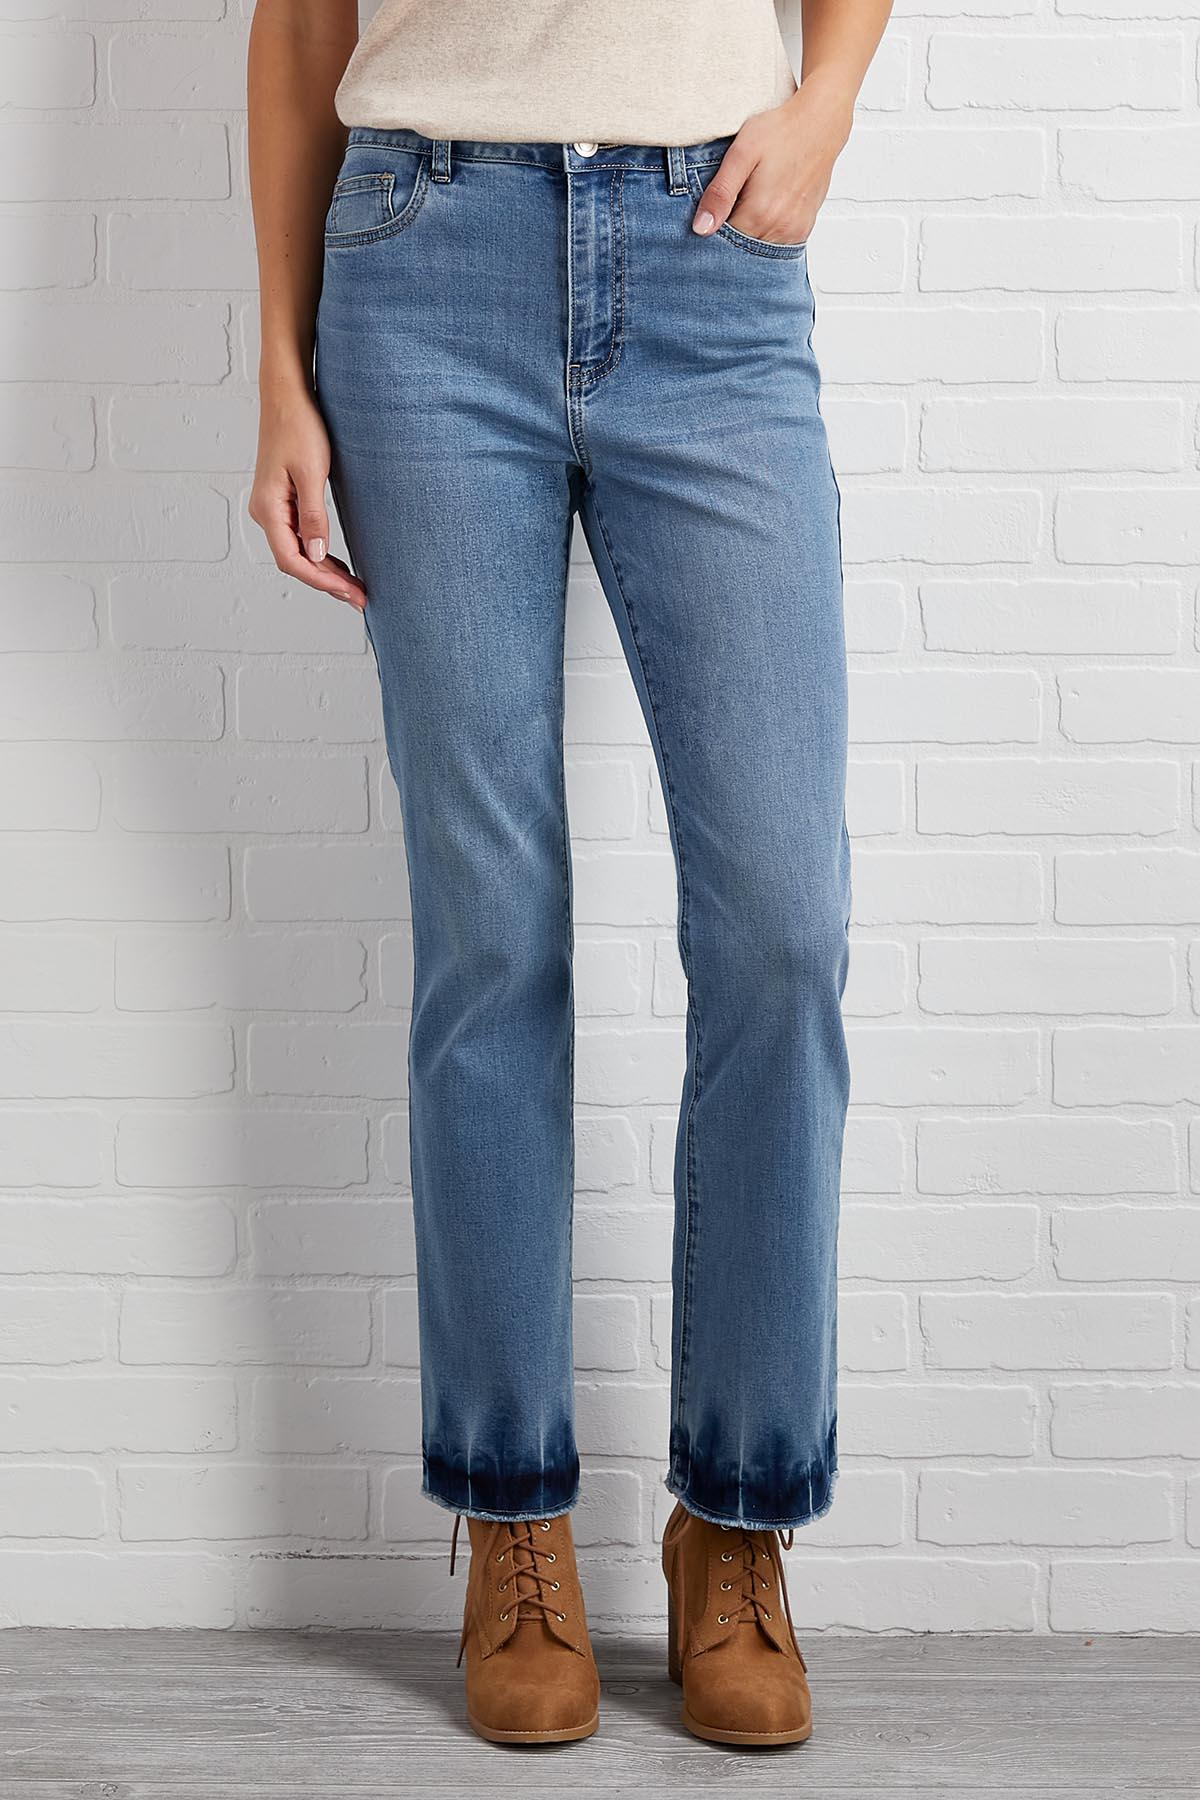 Made For You Jeans